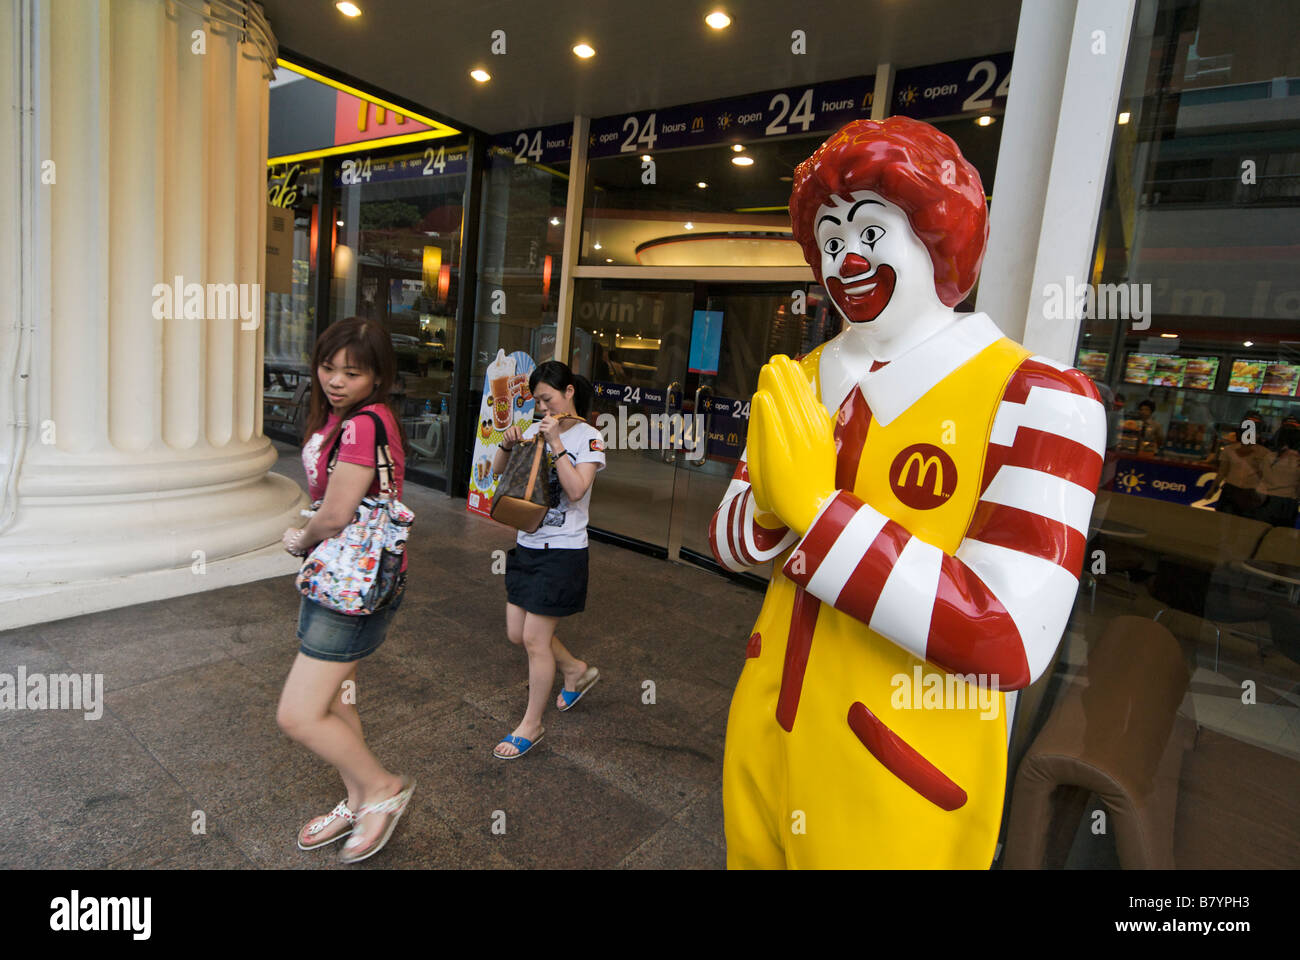 Thai greeting stock photos thai greeting stock images alamy ronald mcdonald doing traditional thai wai greeting at 24hr fast food restaurant pathumwan district in central kristyandbryce Images